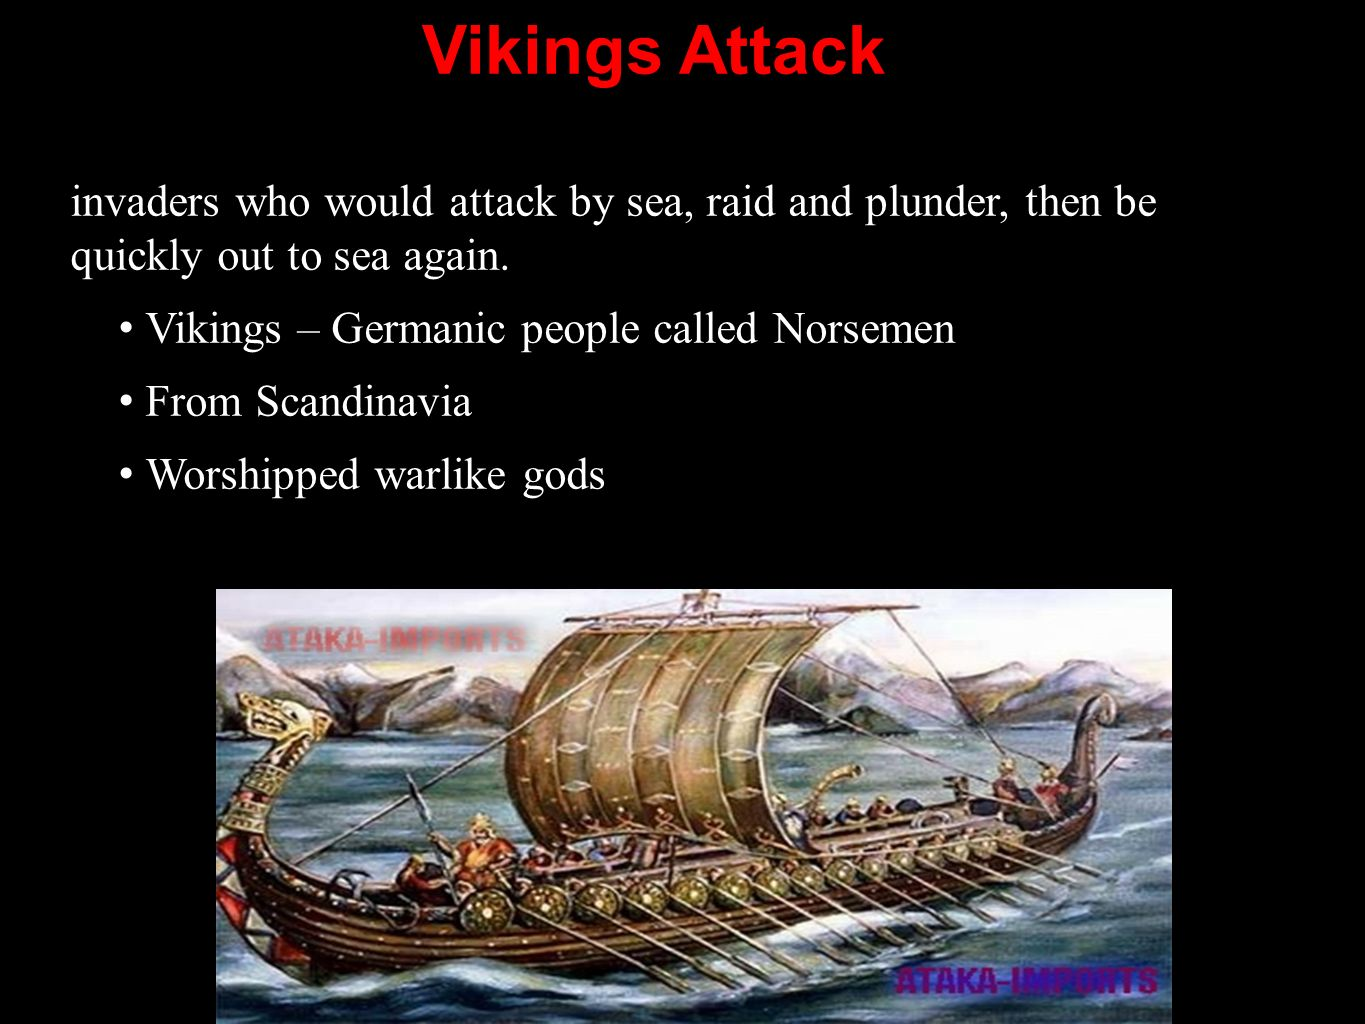 Vikings Attack invaders who would attack by sea, raid and plunder, then be quickly out to sea again.